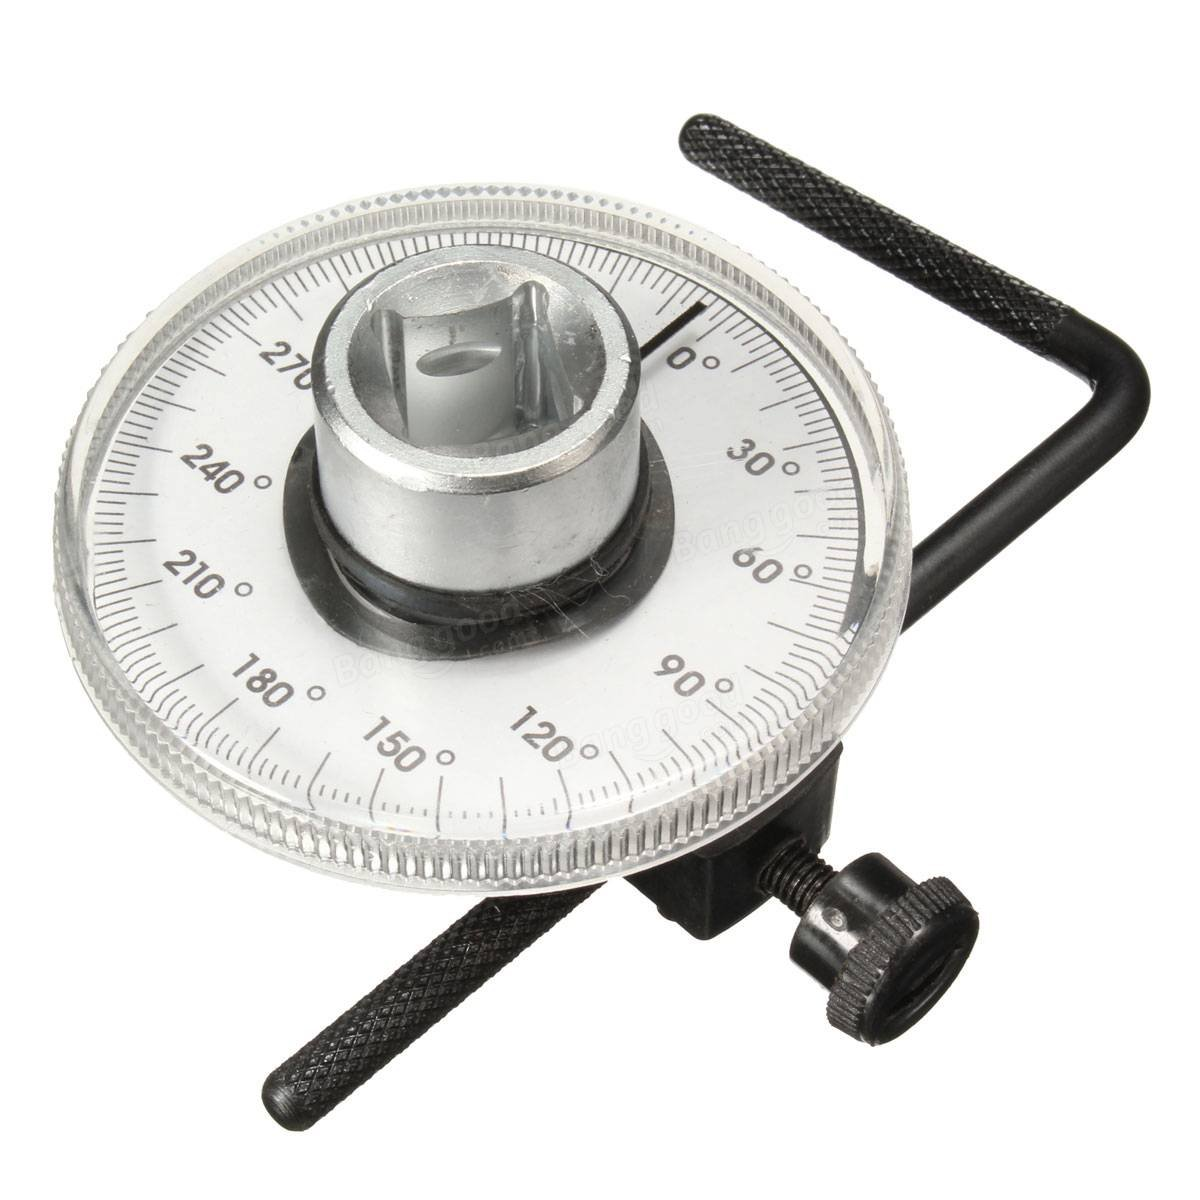 Angle Torque Wrench - Torque Wrench Drive - 1/2 inch Drive Angle Torque Wrench Measure Car Gauge Tool Set Adjustable ( Torque Wrench Tool ) by Unknown (Image #5)